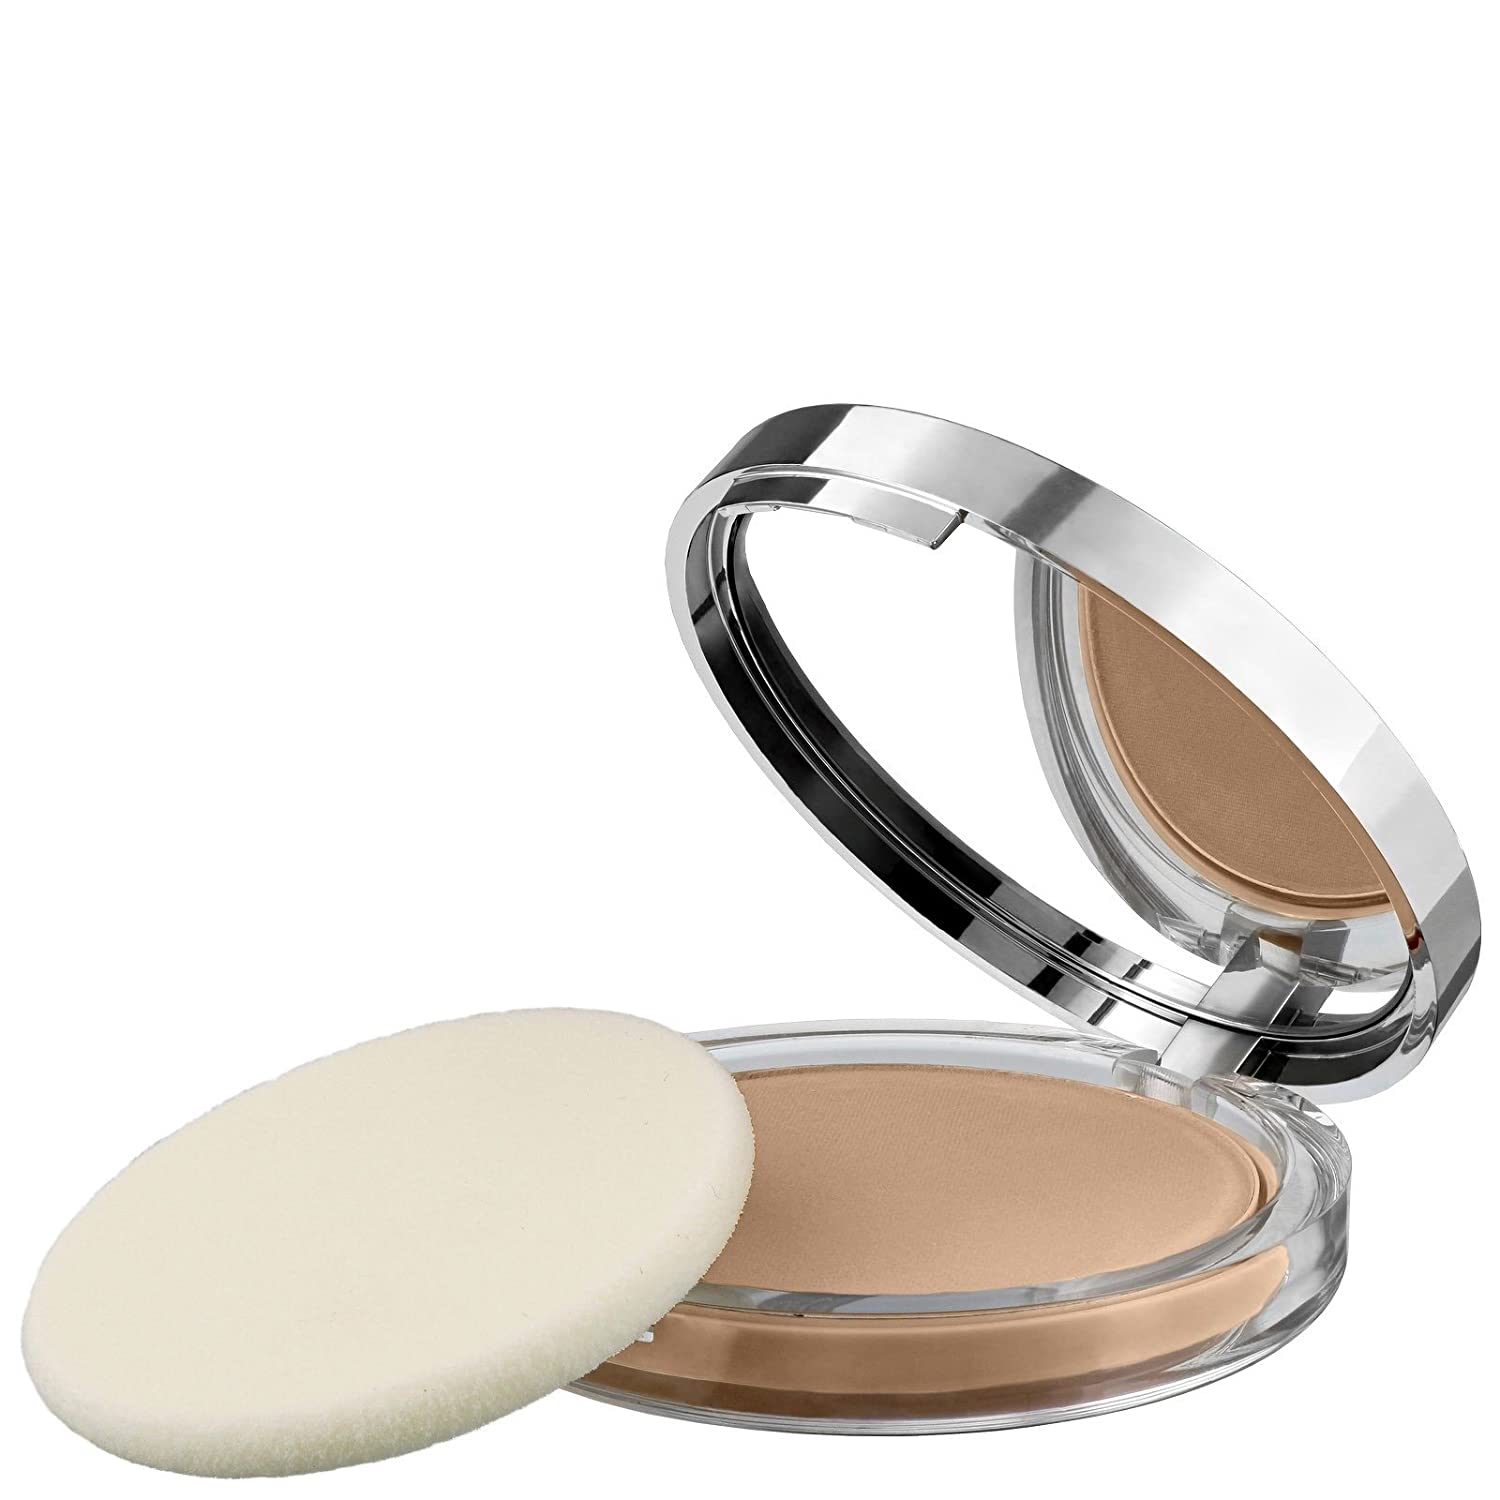 Almost Powder Makeup SPF15 New Packaging by Clinique 02 Neutral Fair / 0.35 oz. 10g